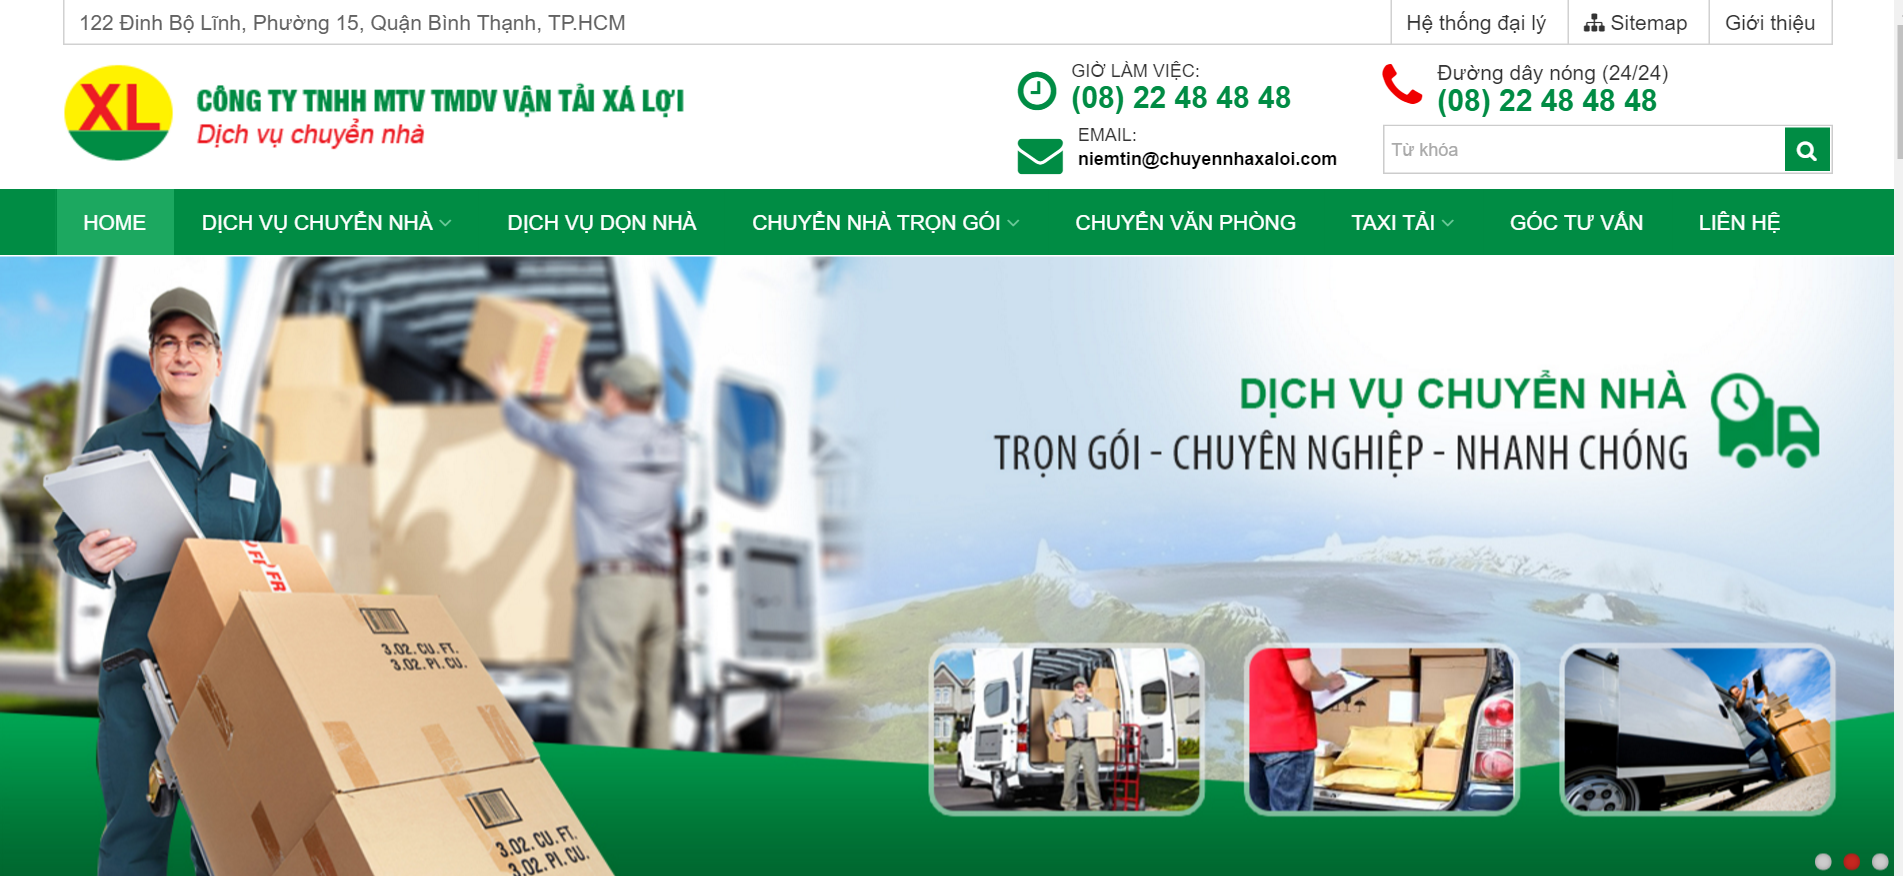 6.Website-dich-vu-chuyen-nha-Moving-house